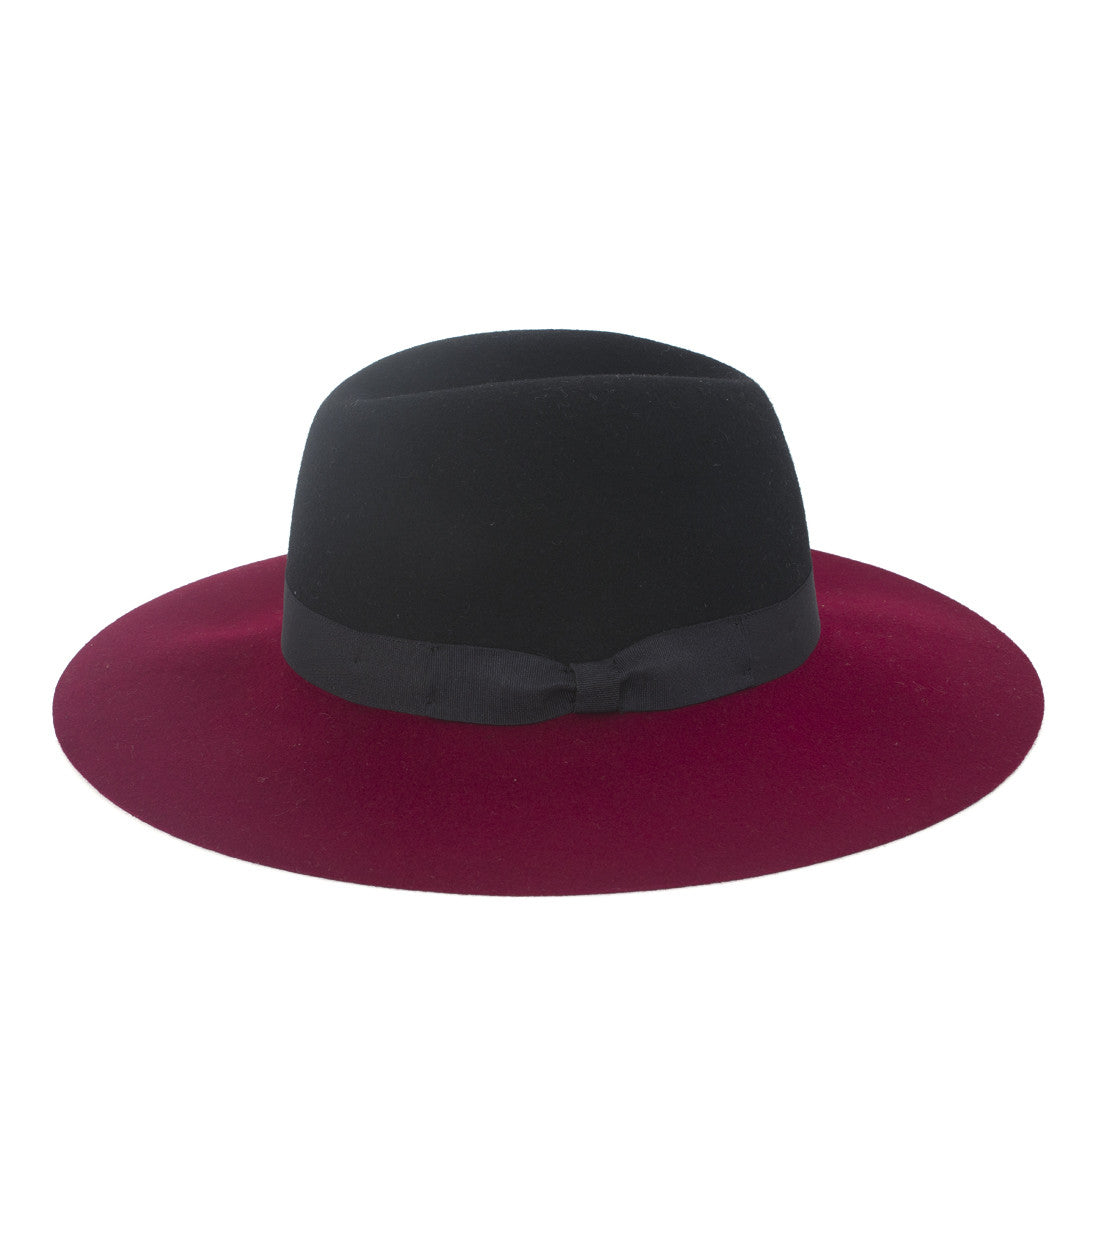 Two Tone Hat with Bow - Just Jamie